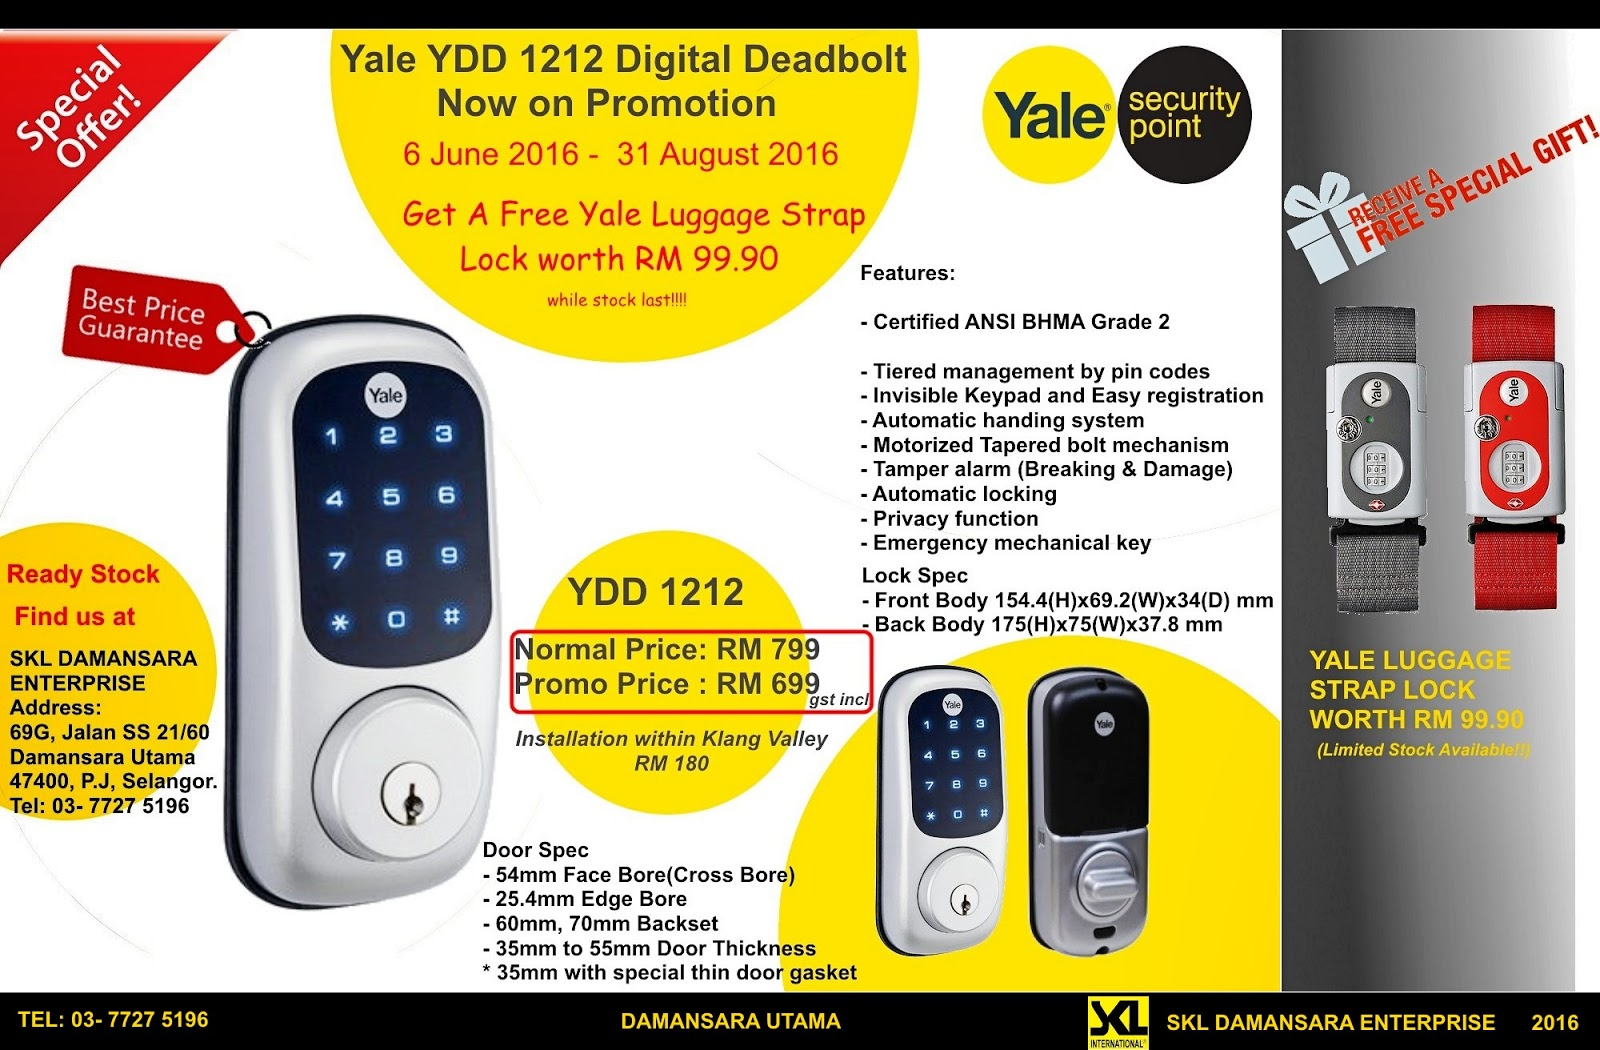 Yale Digital Door Lock YDD1212 Promotion now at RM 699